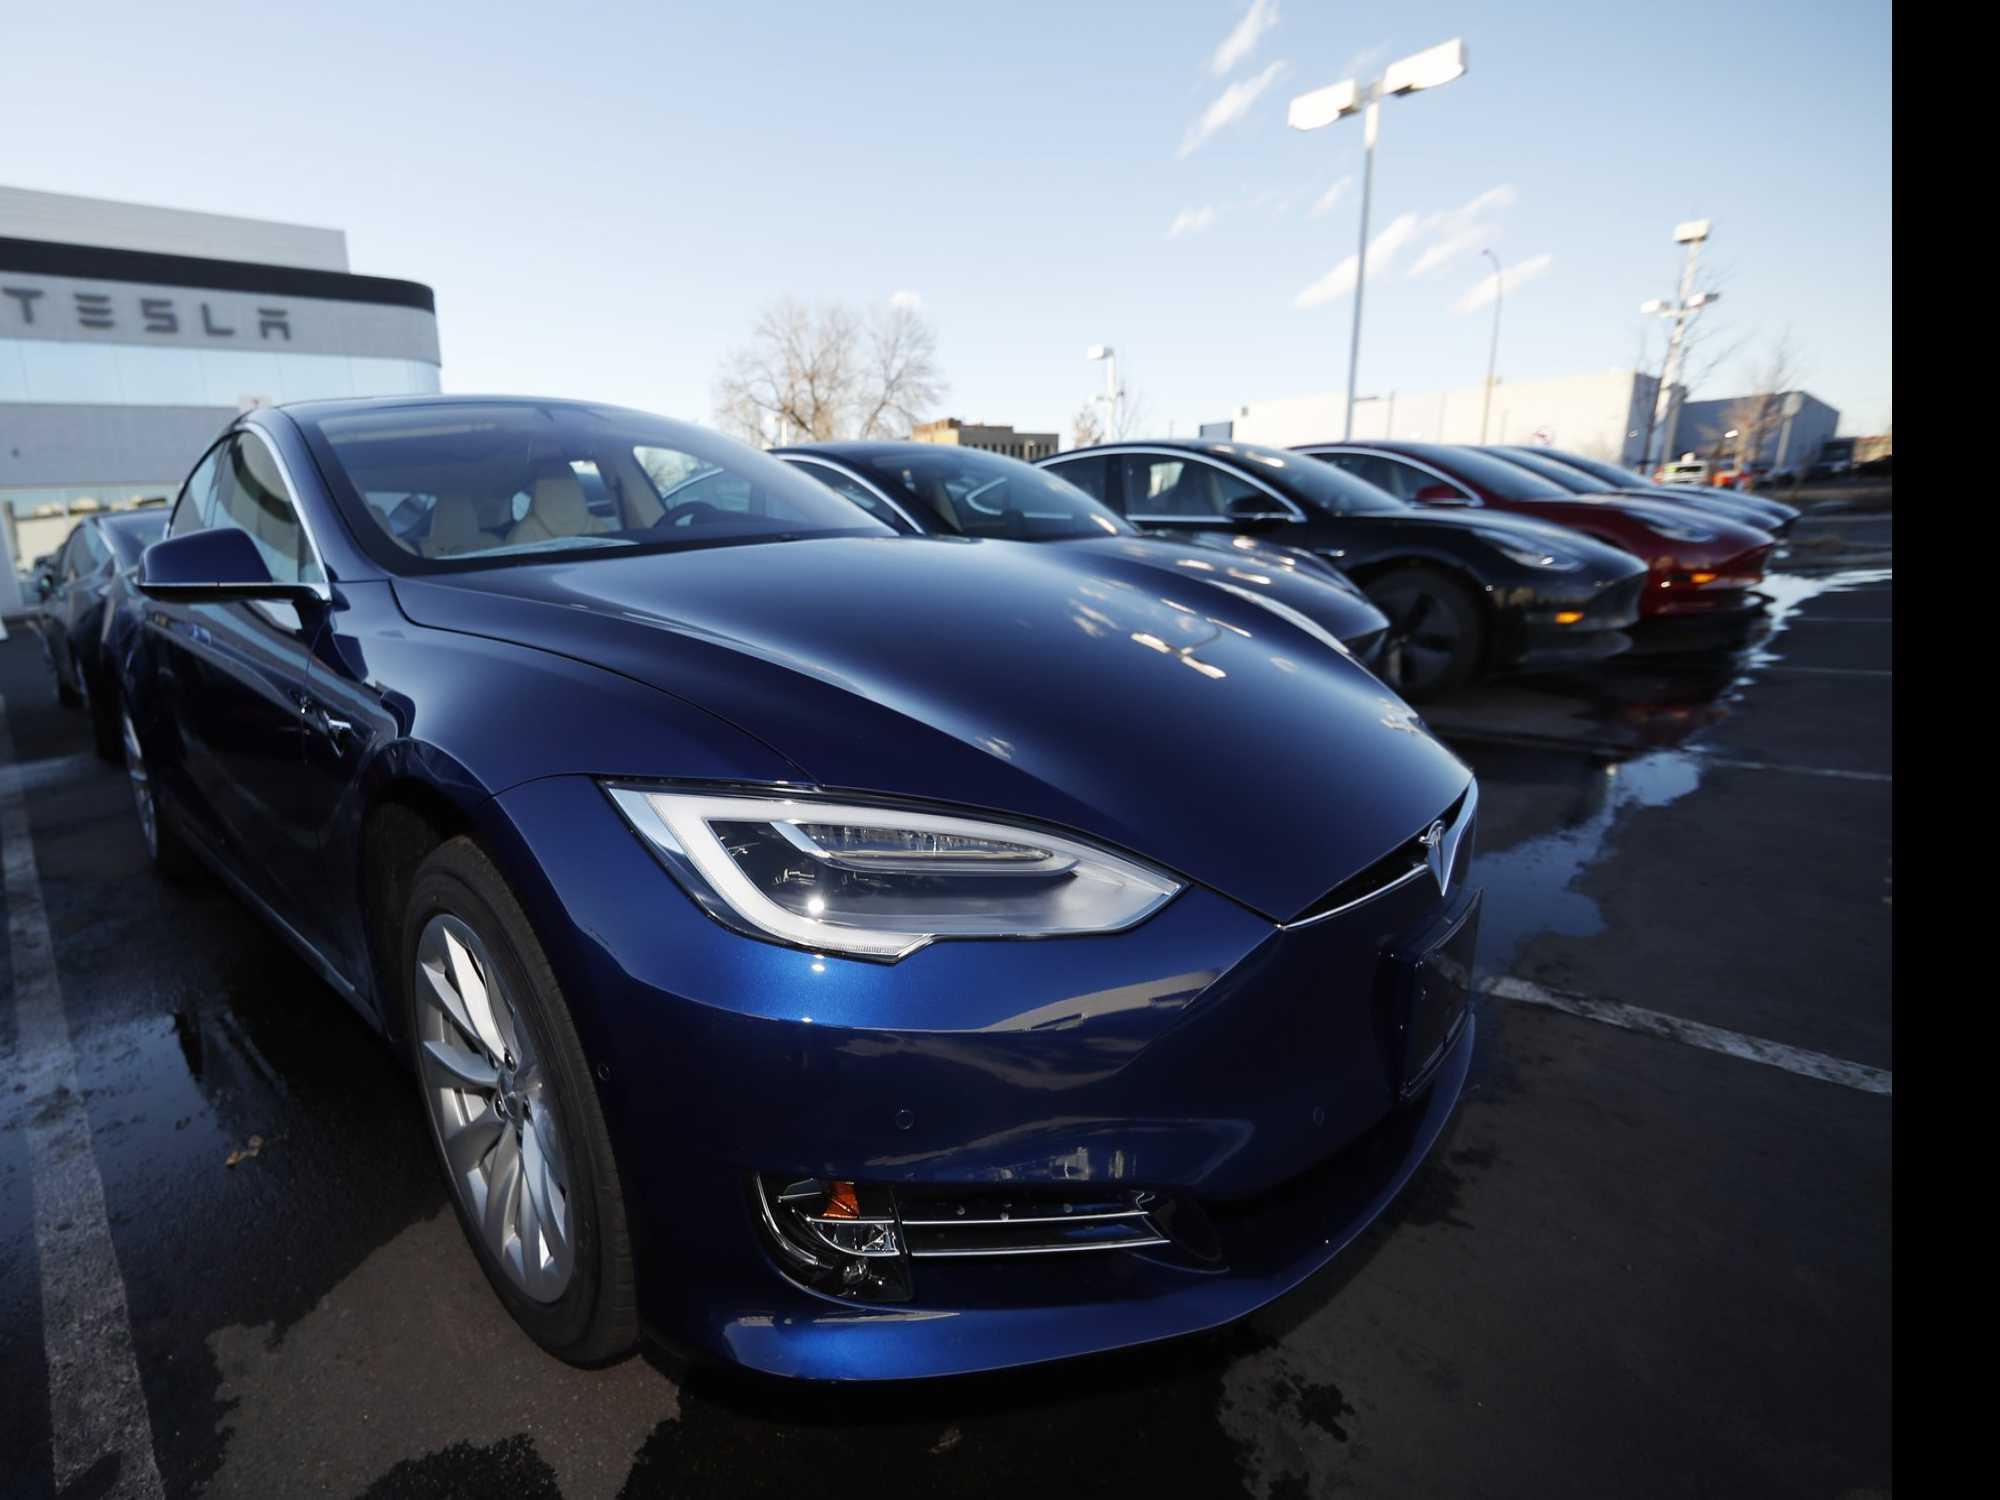 Tesla's Production, Deliveries Fall in the 1st Quarter